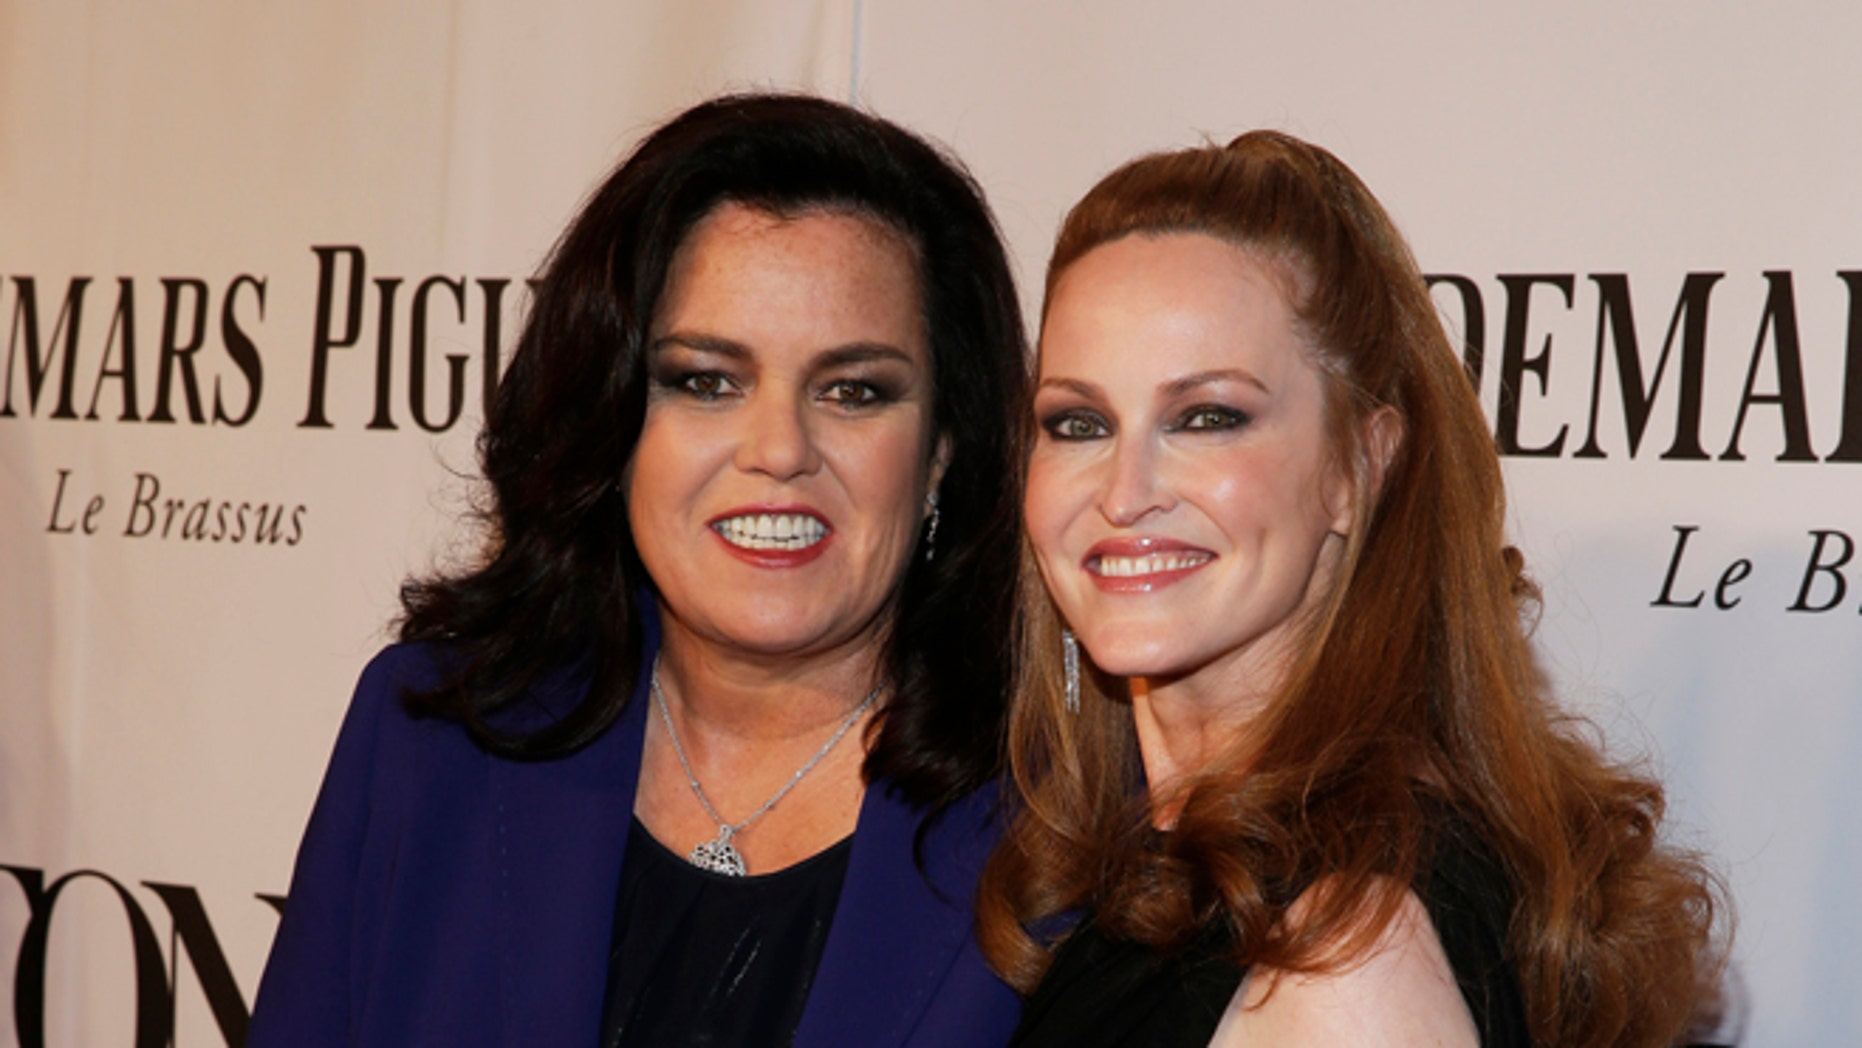 June 8, 2014. Rosie O'Donnell and Michelle Rounds arrive for the Tonys at Radio City Music Hall.